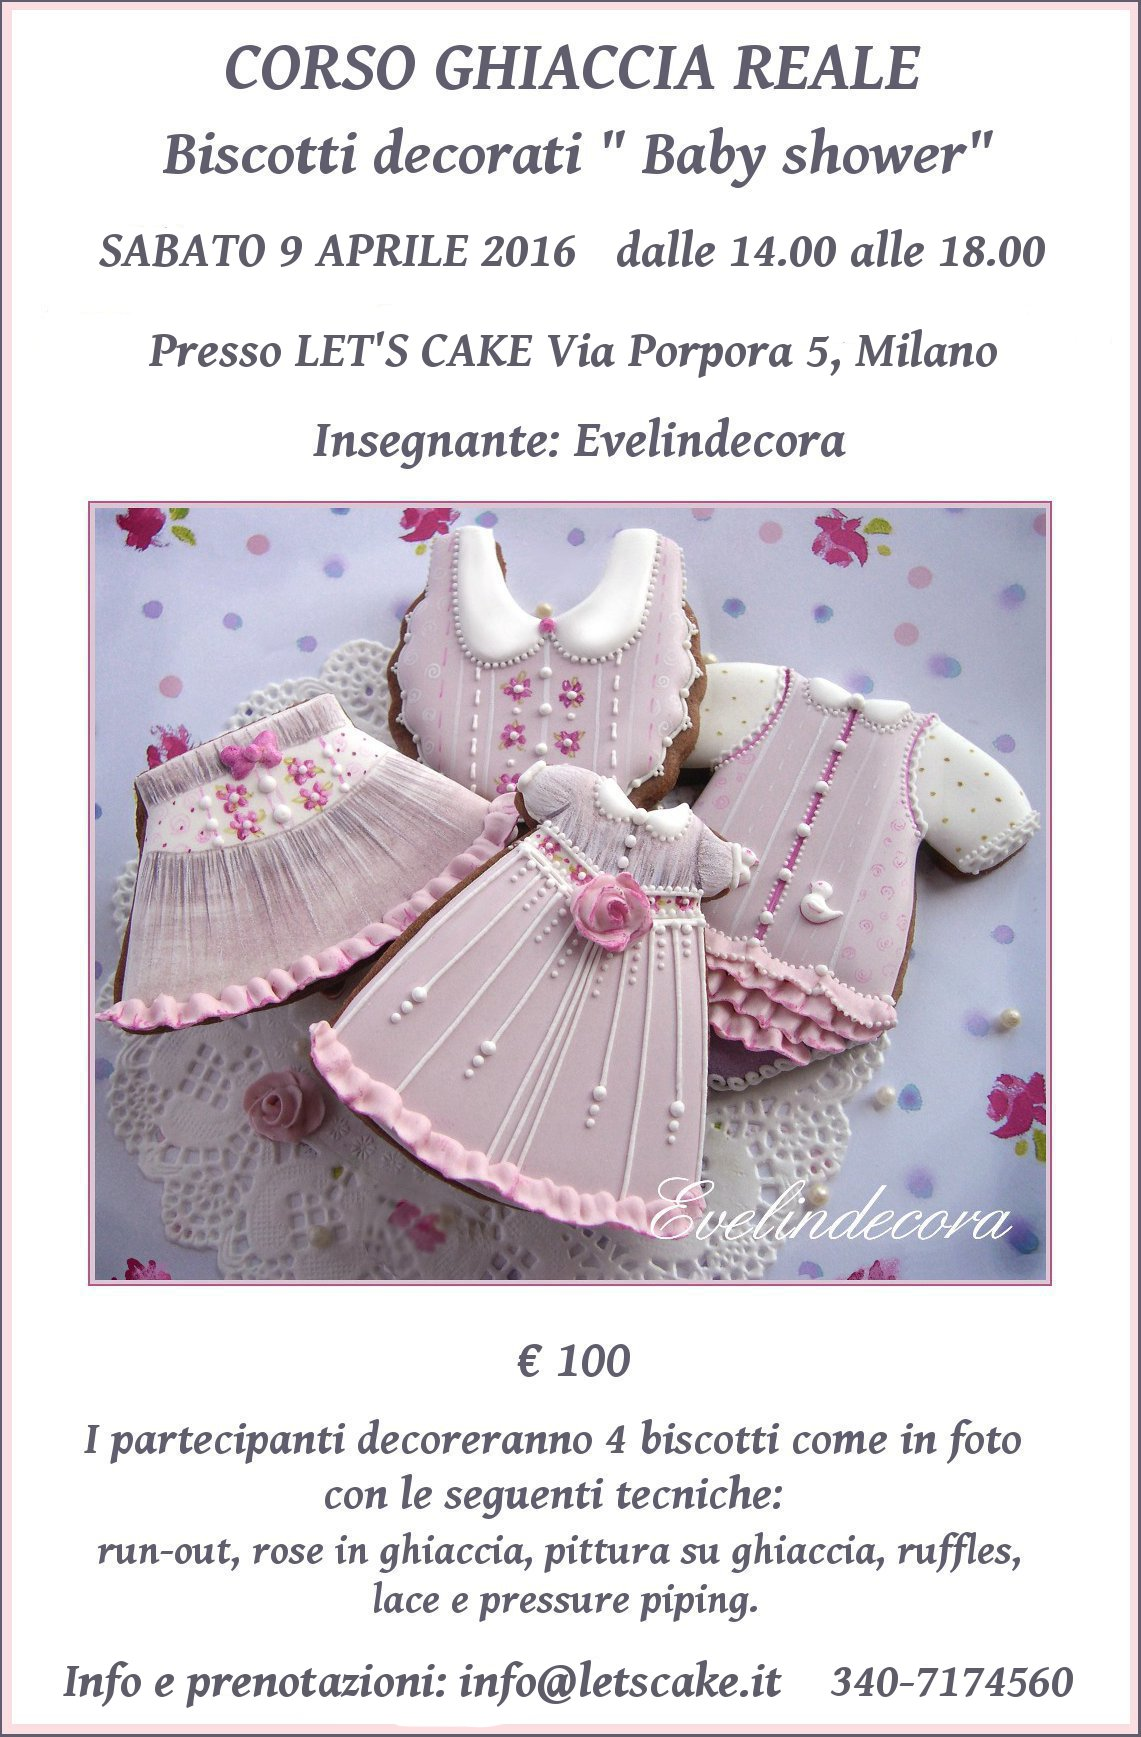 corsi ghiaccia reale 2016 Evelindecora Milano biscotti decorati: I partecipanti realizzeranno tre biscotti decorati come in foto con le seguenti tecniche: painting su ghiaccia, lace, run out, rose in ghiaccia reale e ruffles.